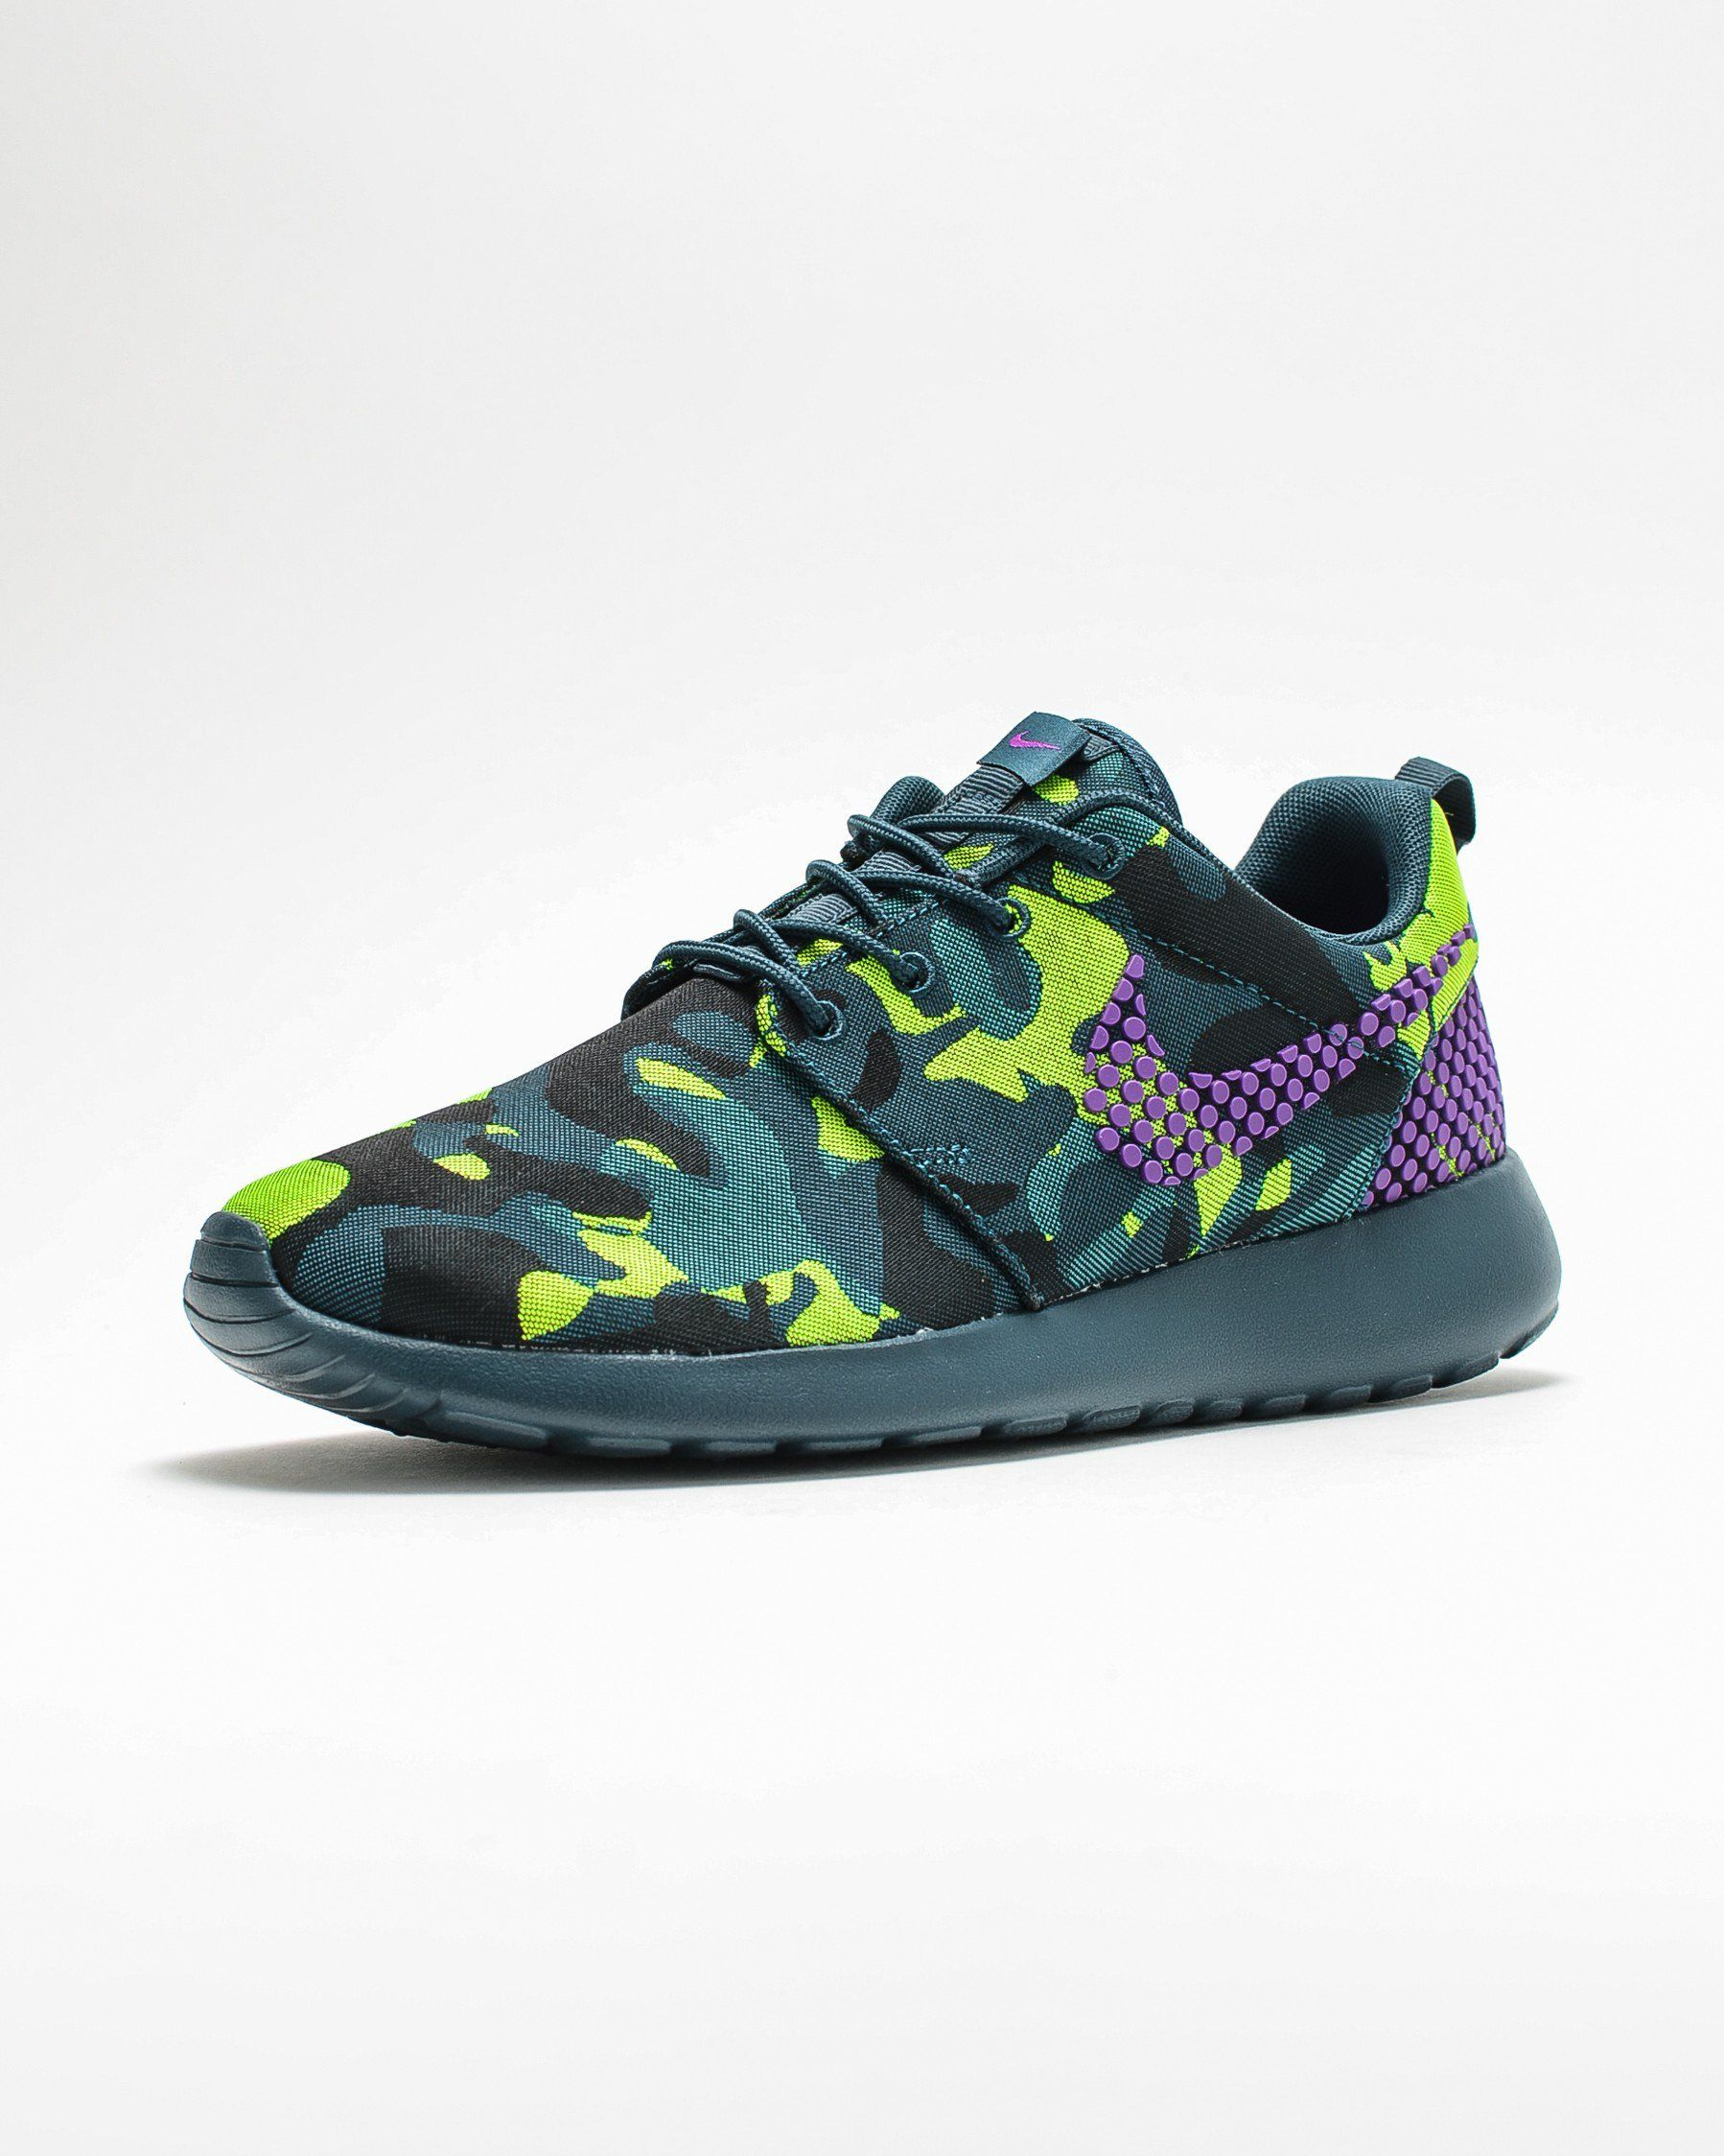 Nike Roshe One Premium Plus WMNS Mid Teal Camo